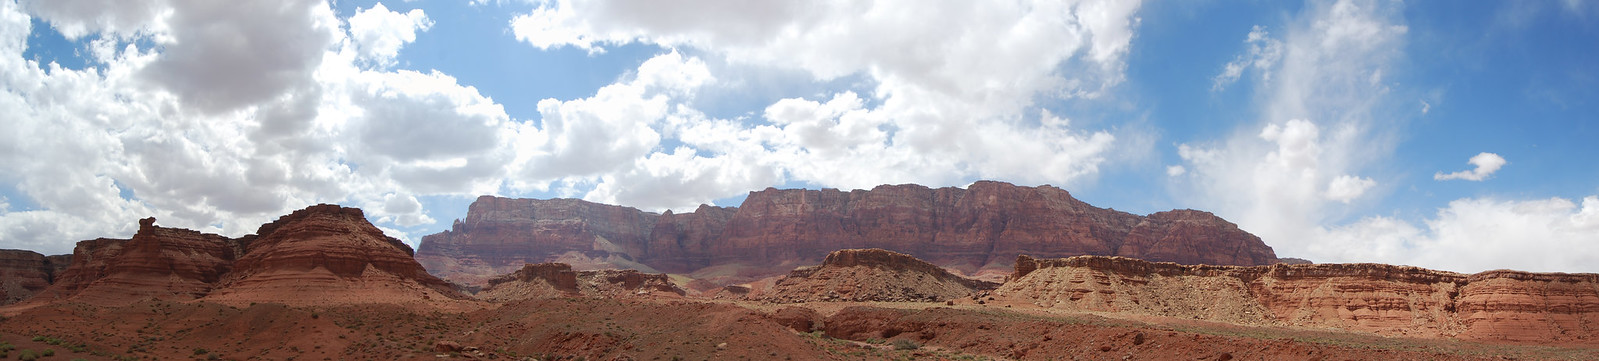 Scenery at Vermilion Cliffs and Lee's Ferry